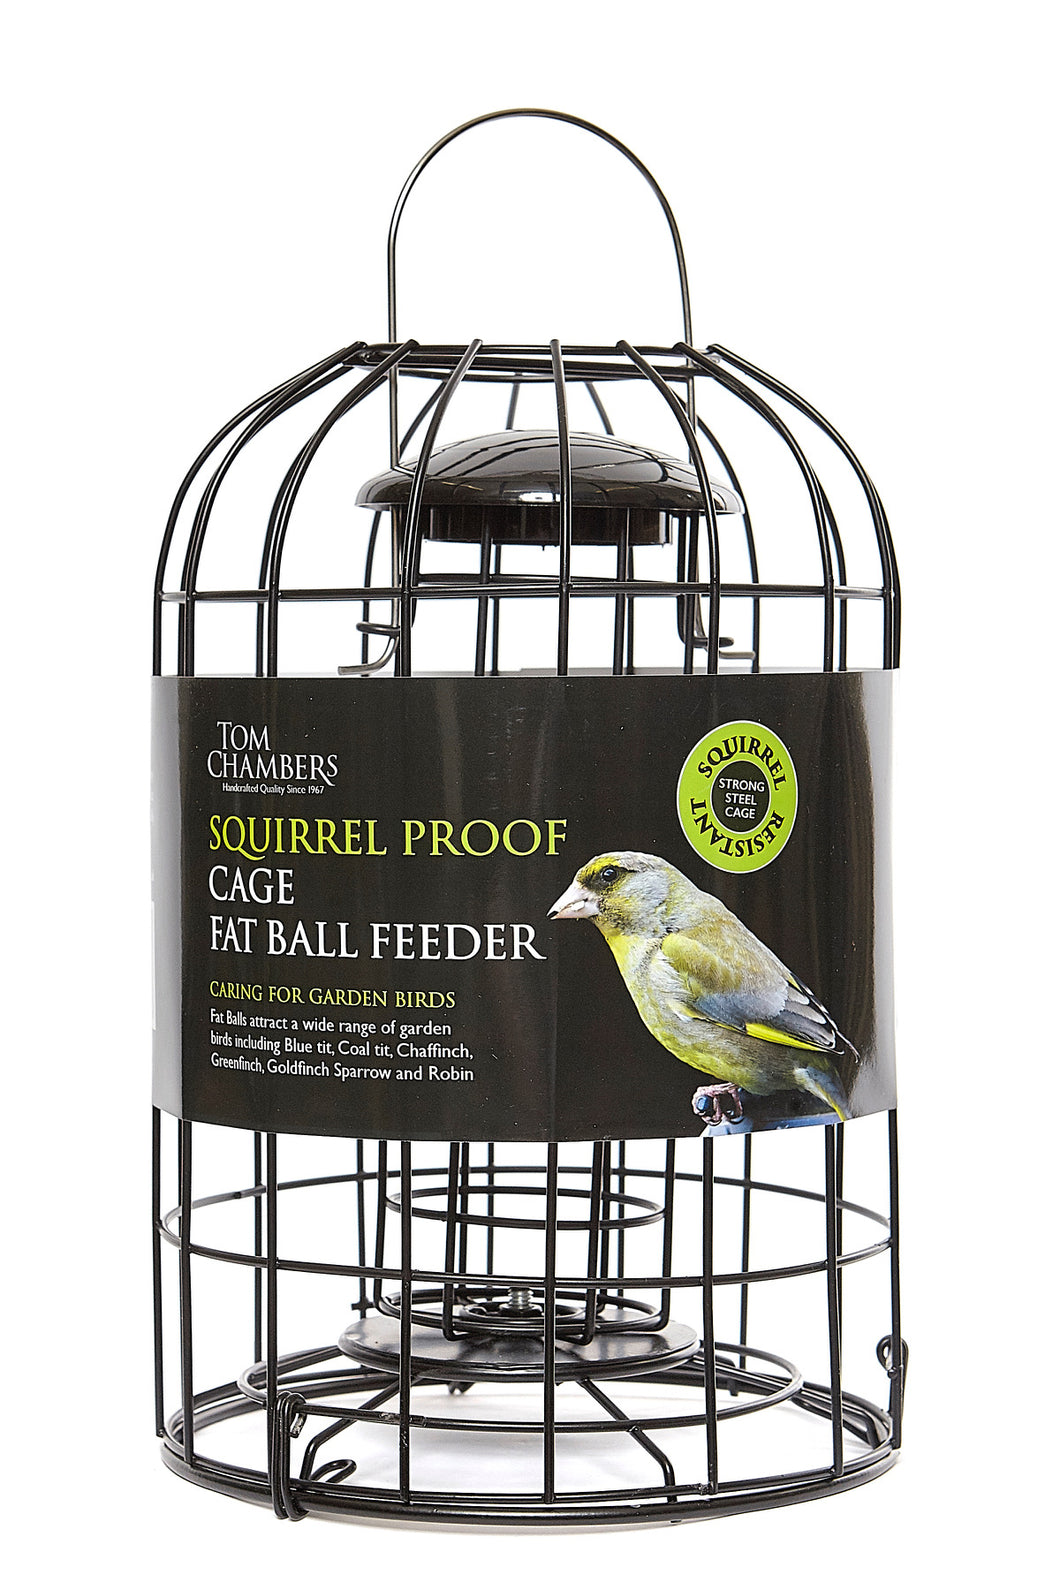 Squirrel Proof Cage Fat Ball Feeder